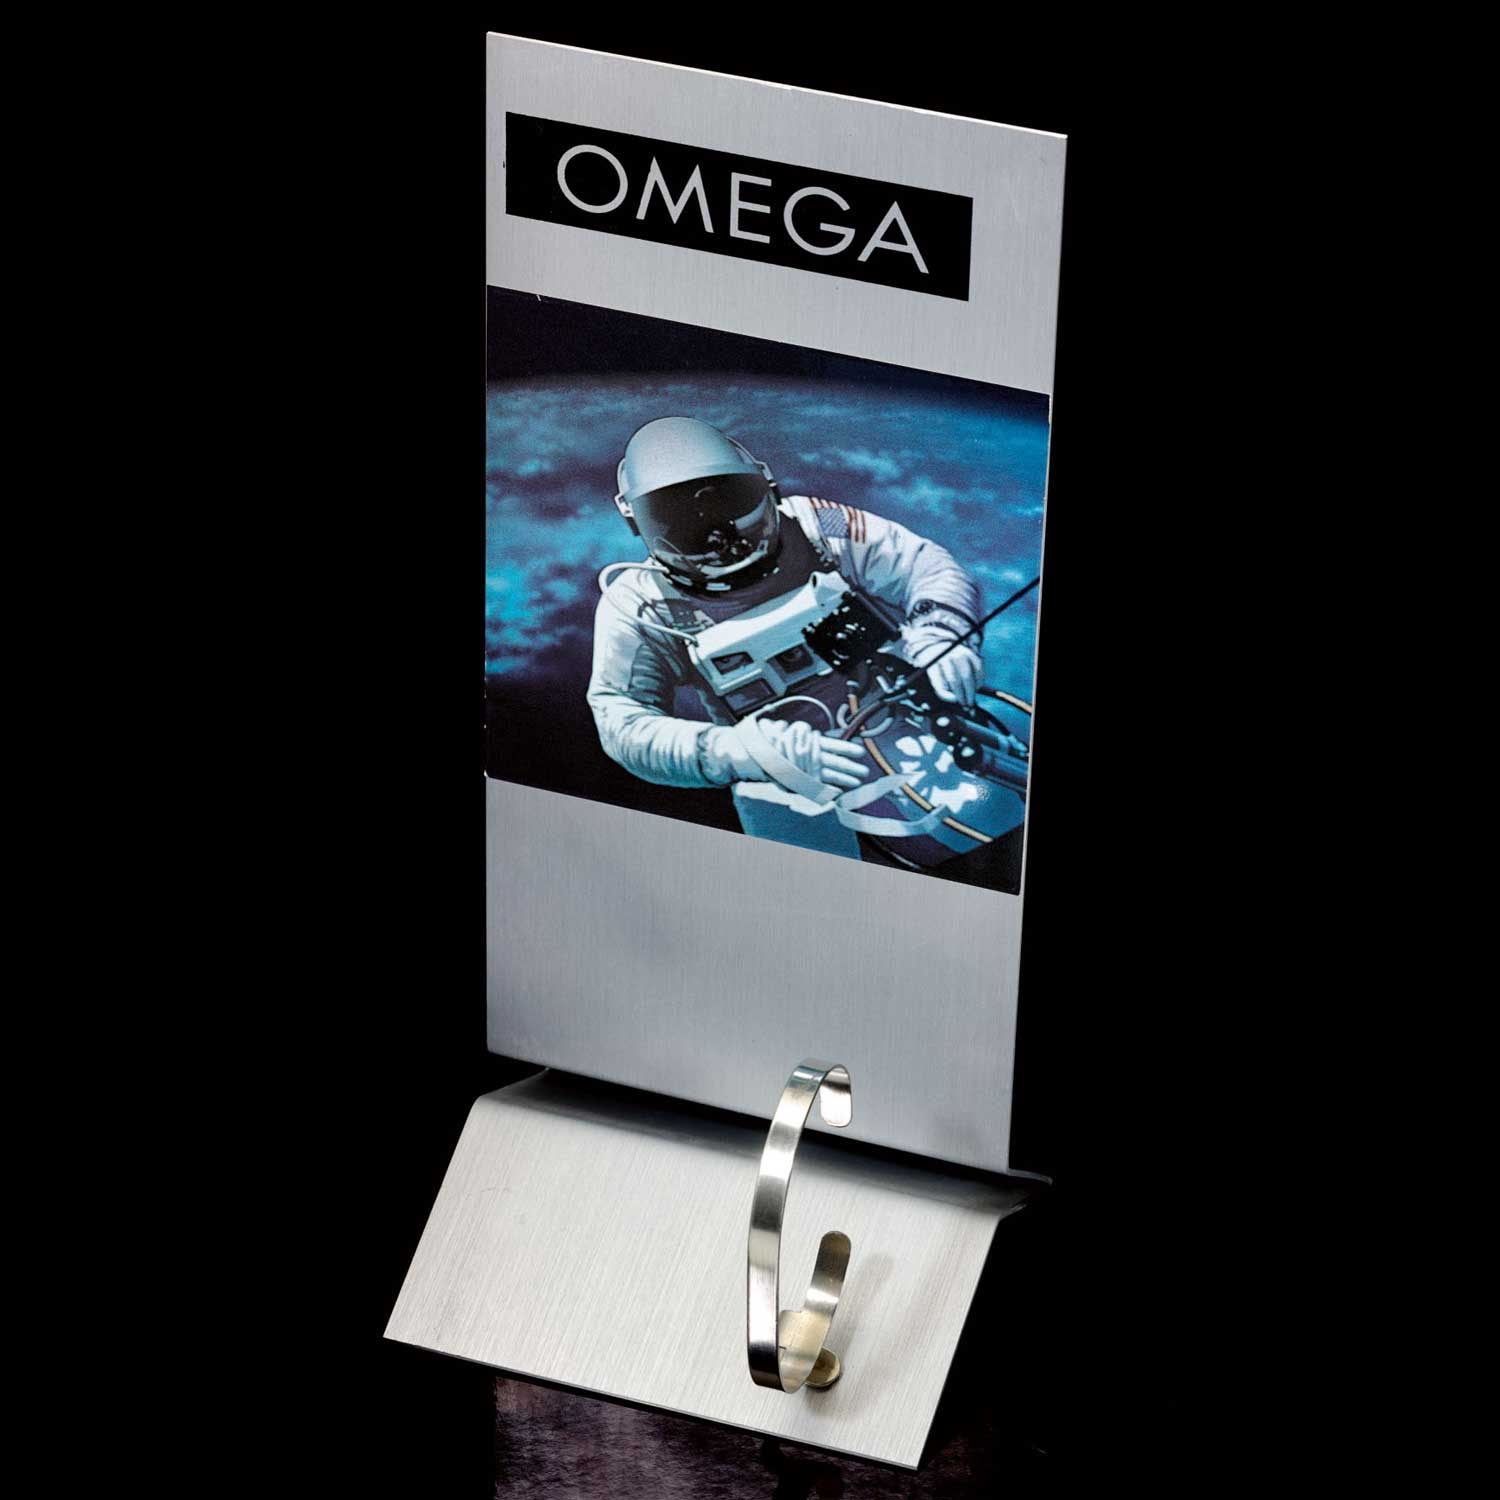 Lot 46: Stainless steel Omega adjustable watch stand depicting an astronaut, circa 1995